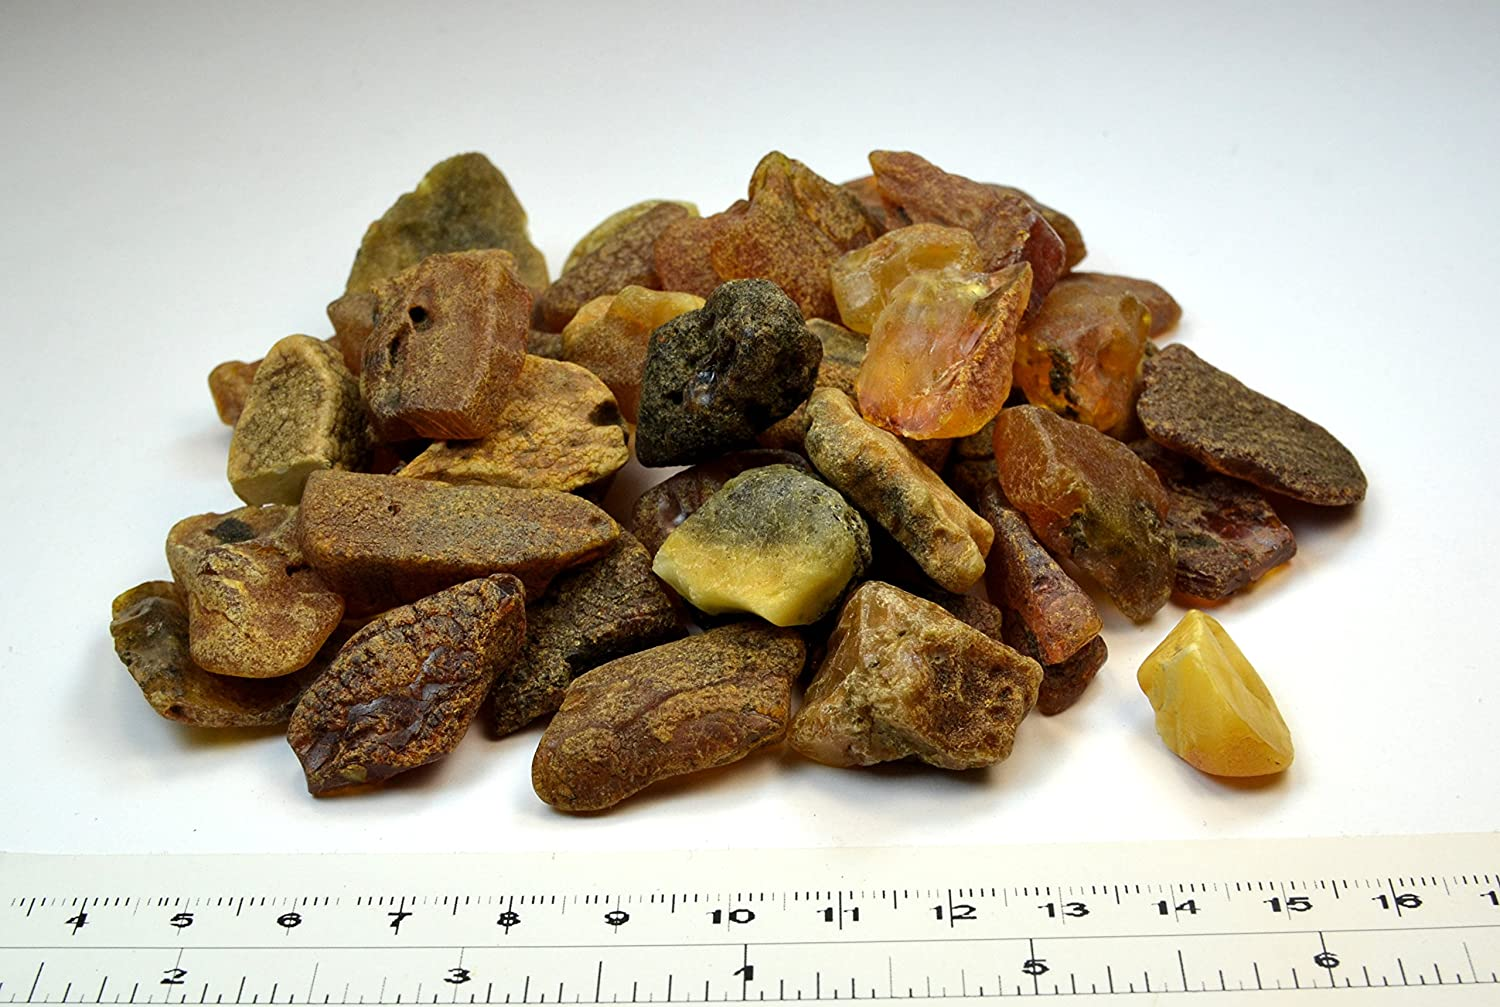 Amber Culture Raw Amber Stones Baltic Amber Resin, Genuine and Natural. Random Lot (Size 0.03-0.09 Ounce | Amount: 3.52 Ounces) 4336815915